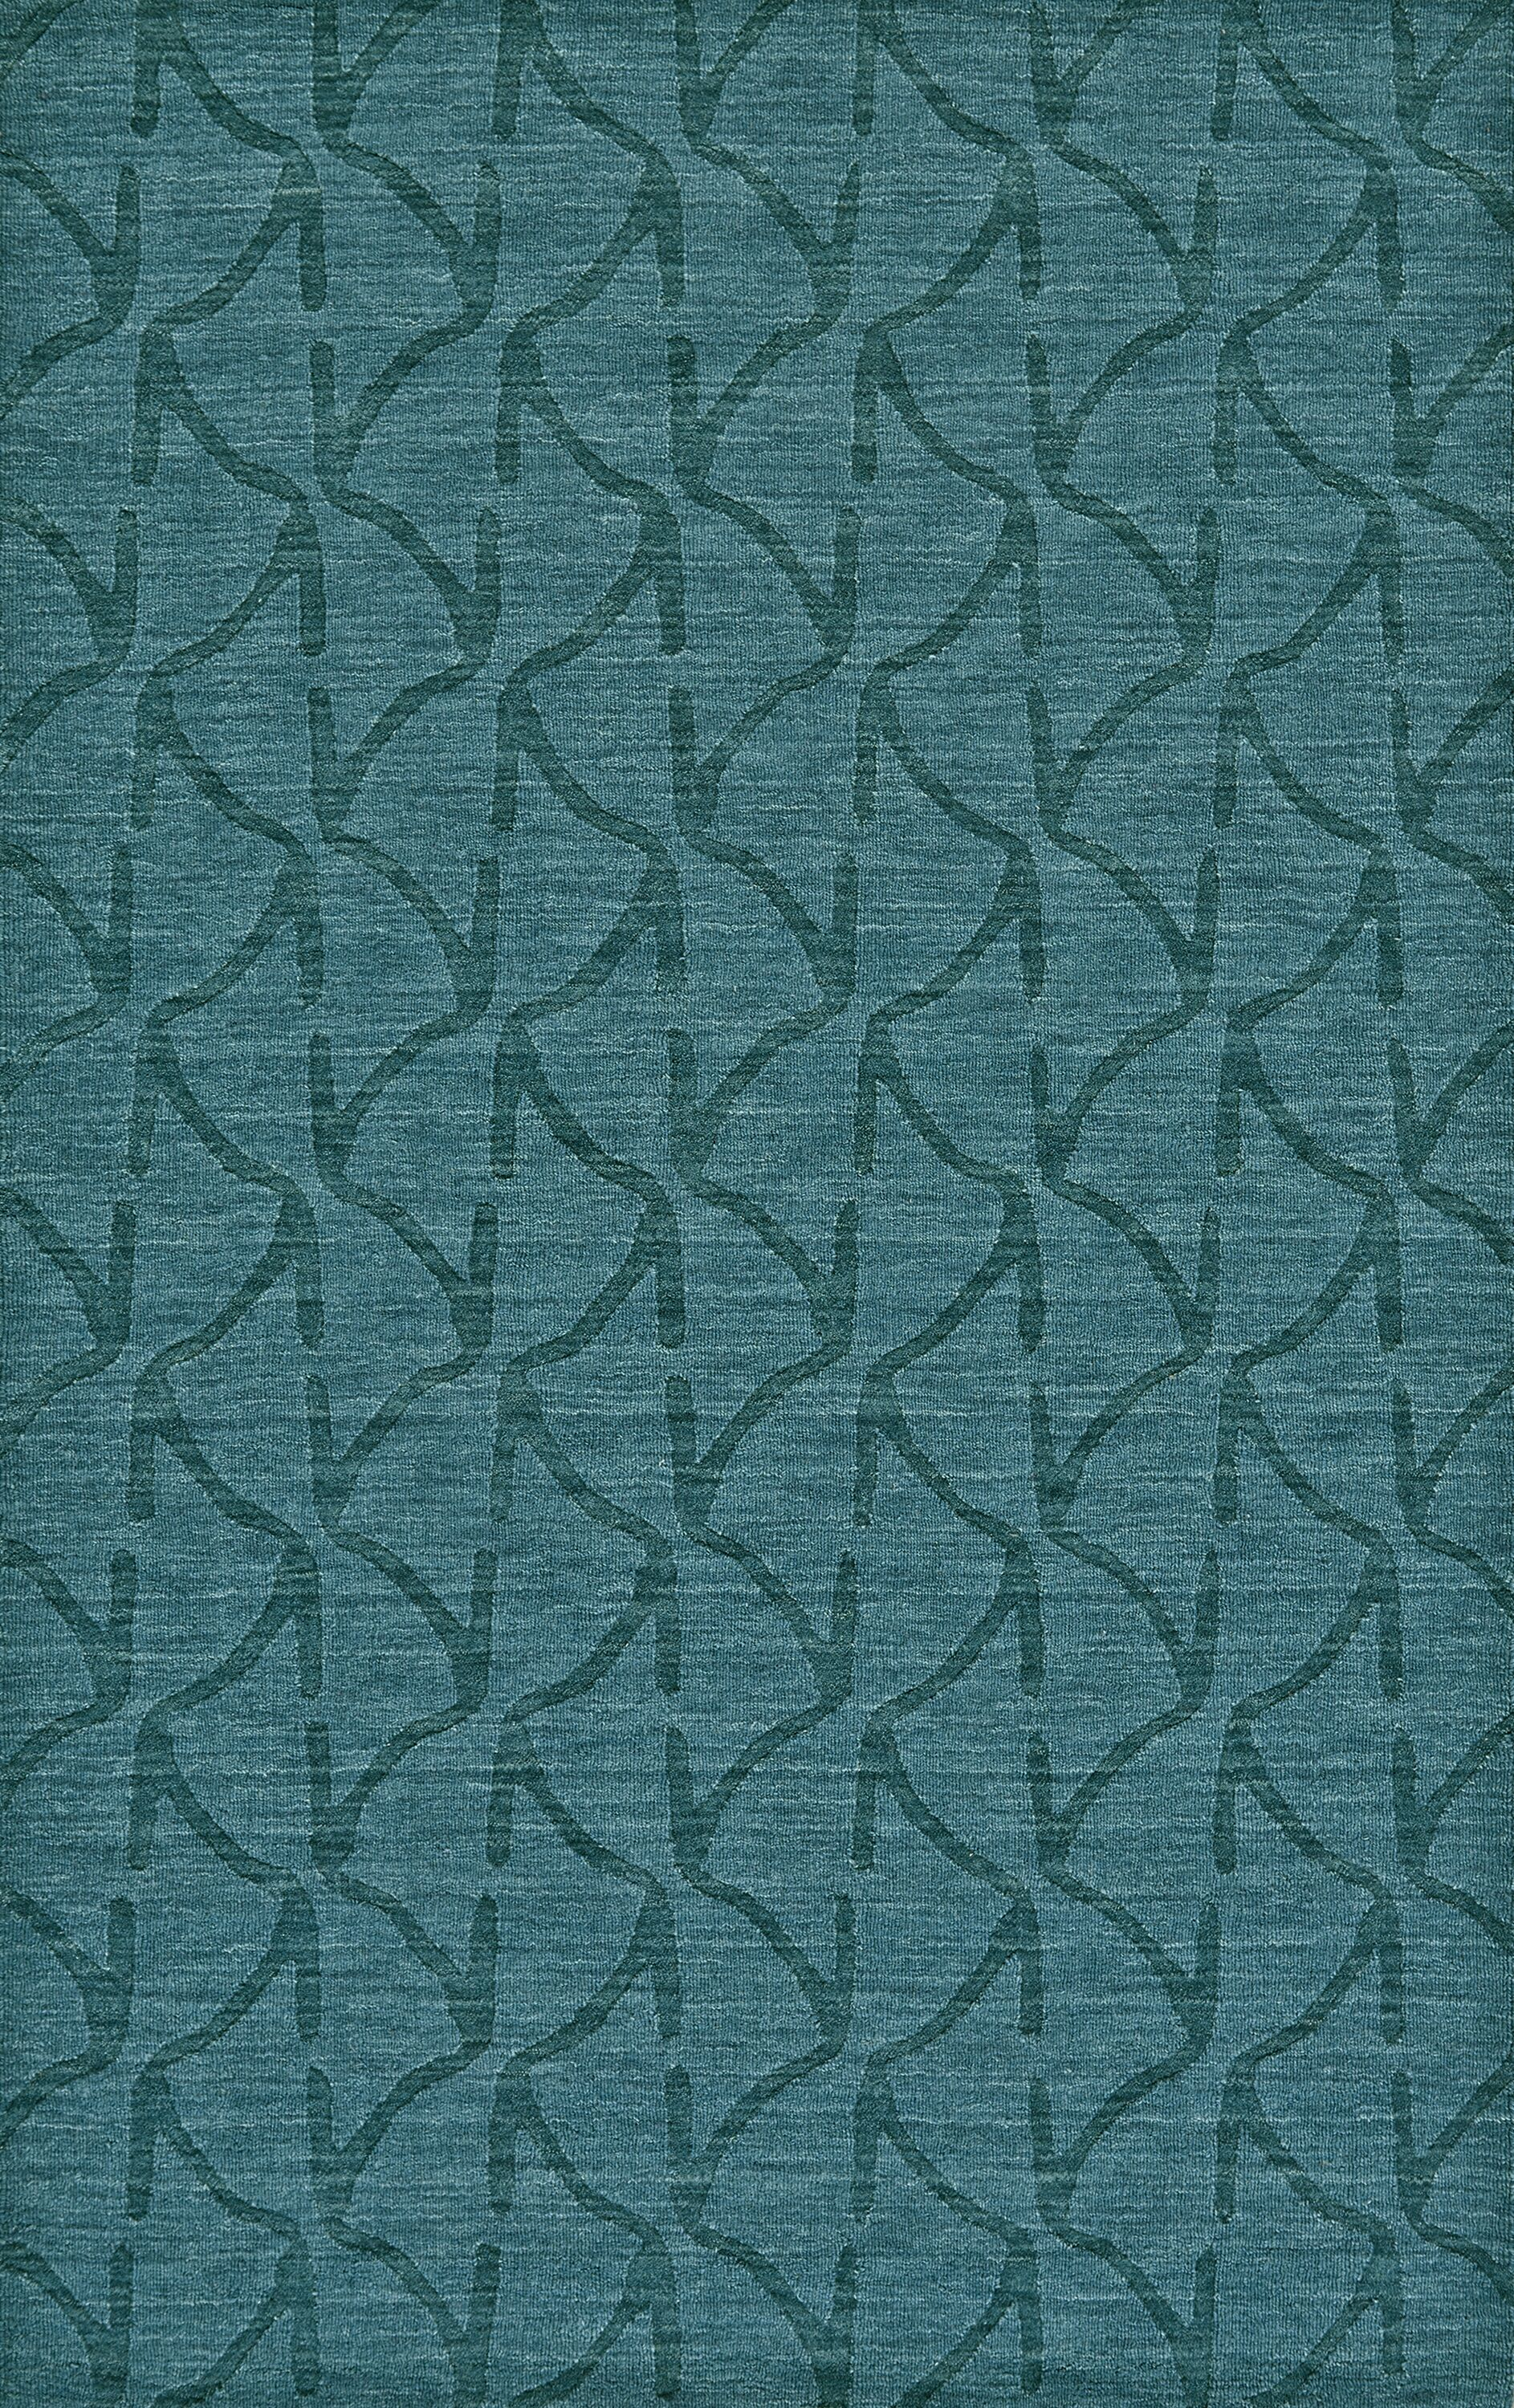 Murray Hand Woven Wool Teal Area Rug Rug Size: Rectangle 9'6